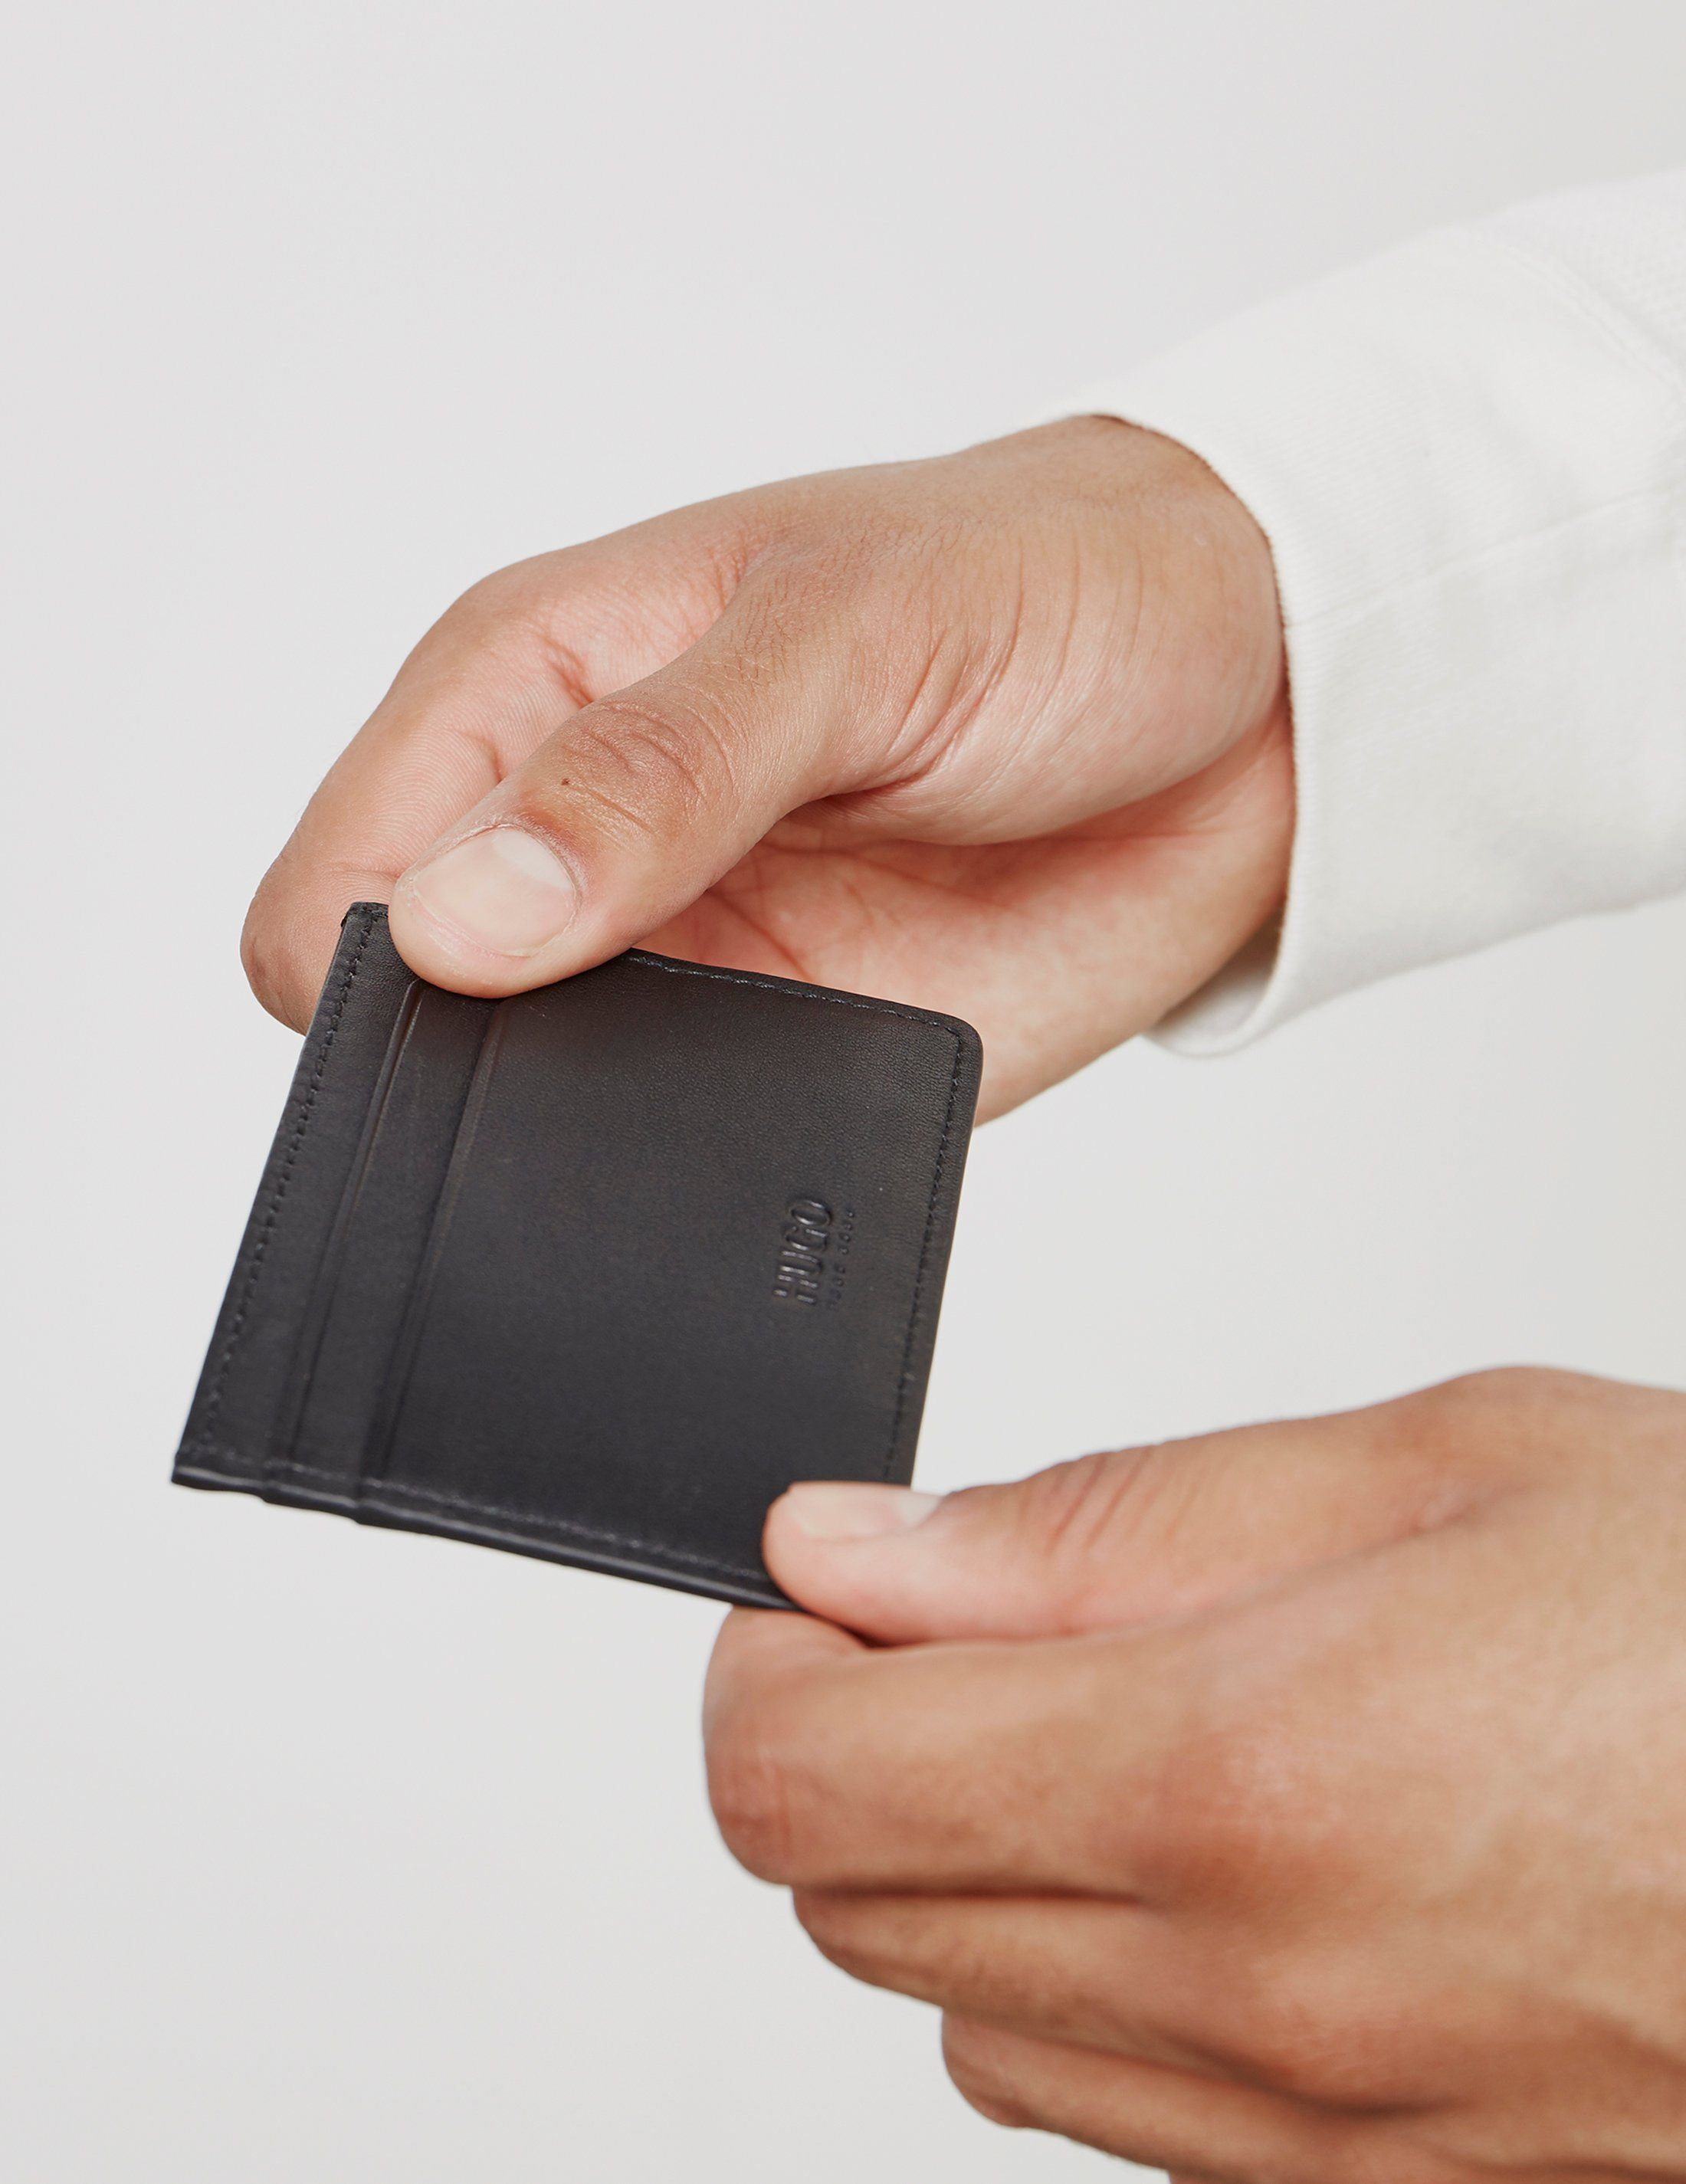 HUGO Record Card Holder - Online Exclusive